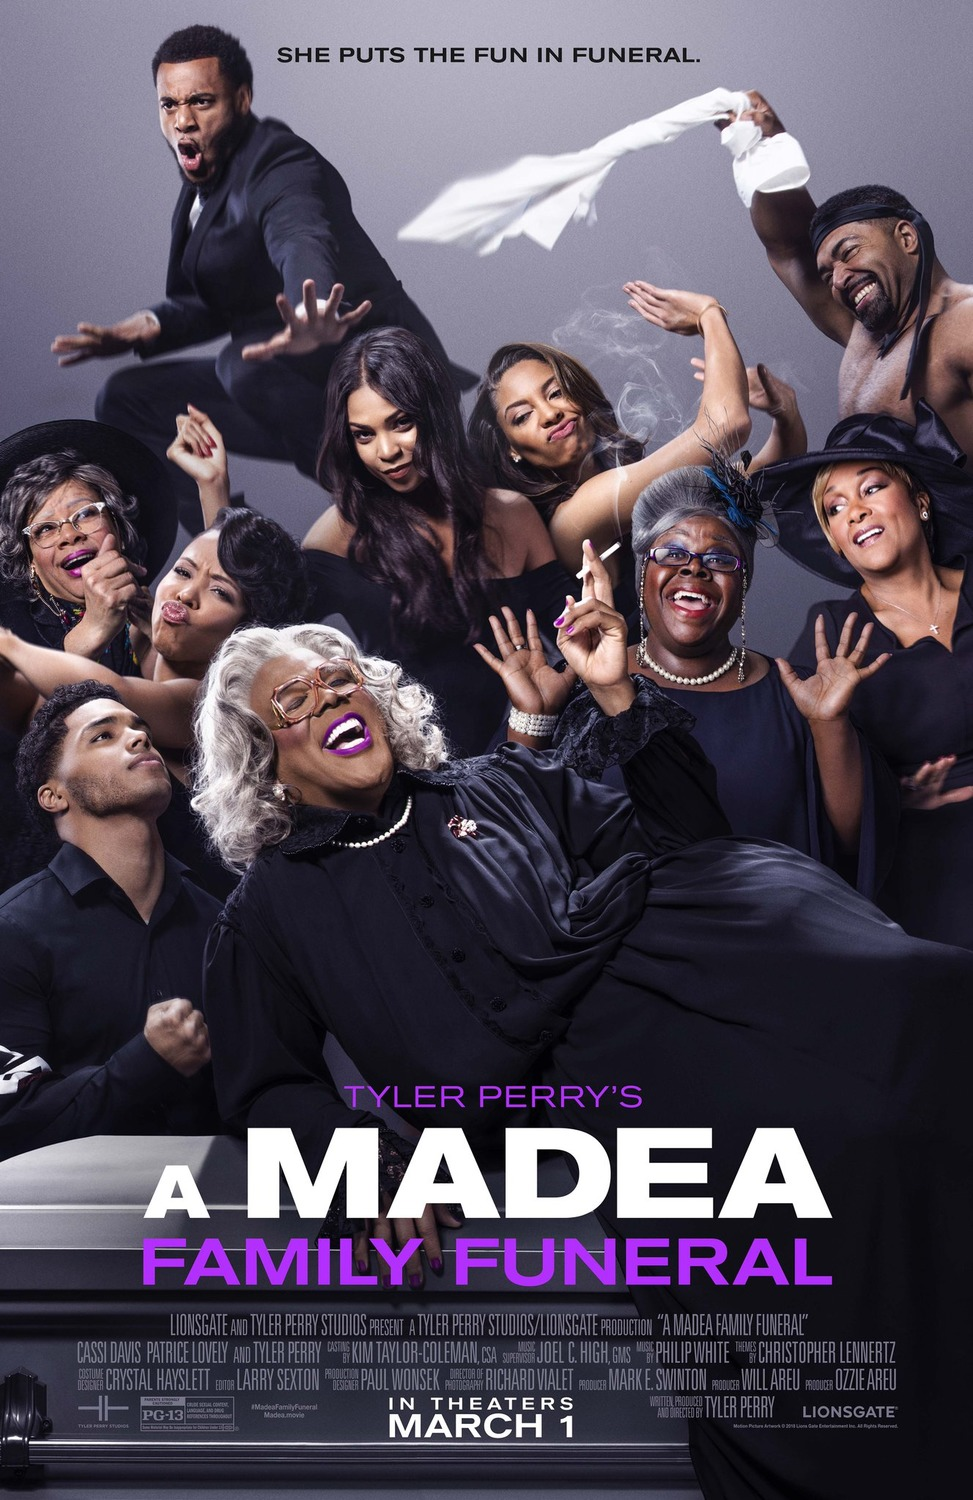 A Madea Family Funeral Movie – She puts the fun in funeral ...